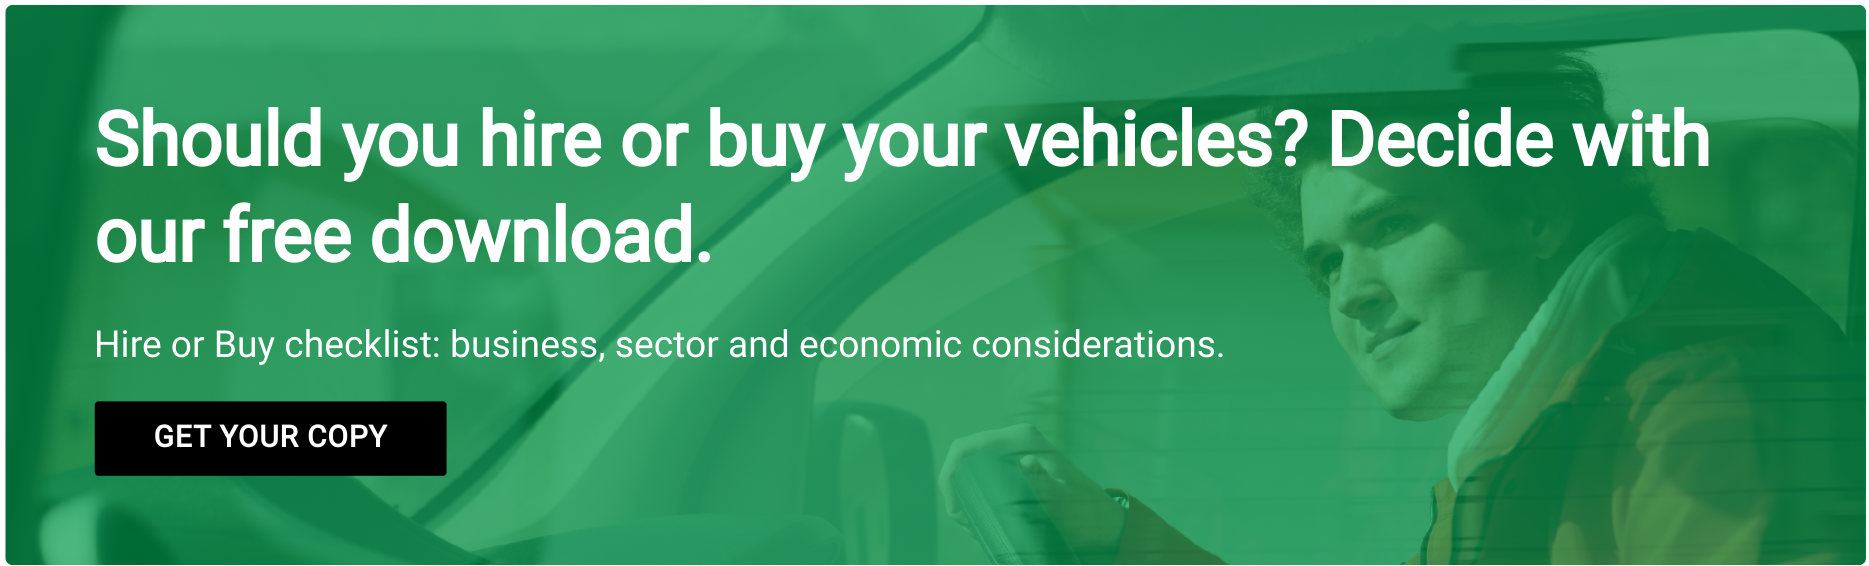 LCV acqusition - hire or buy